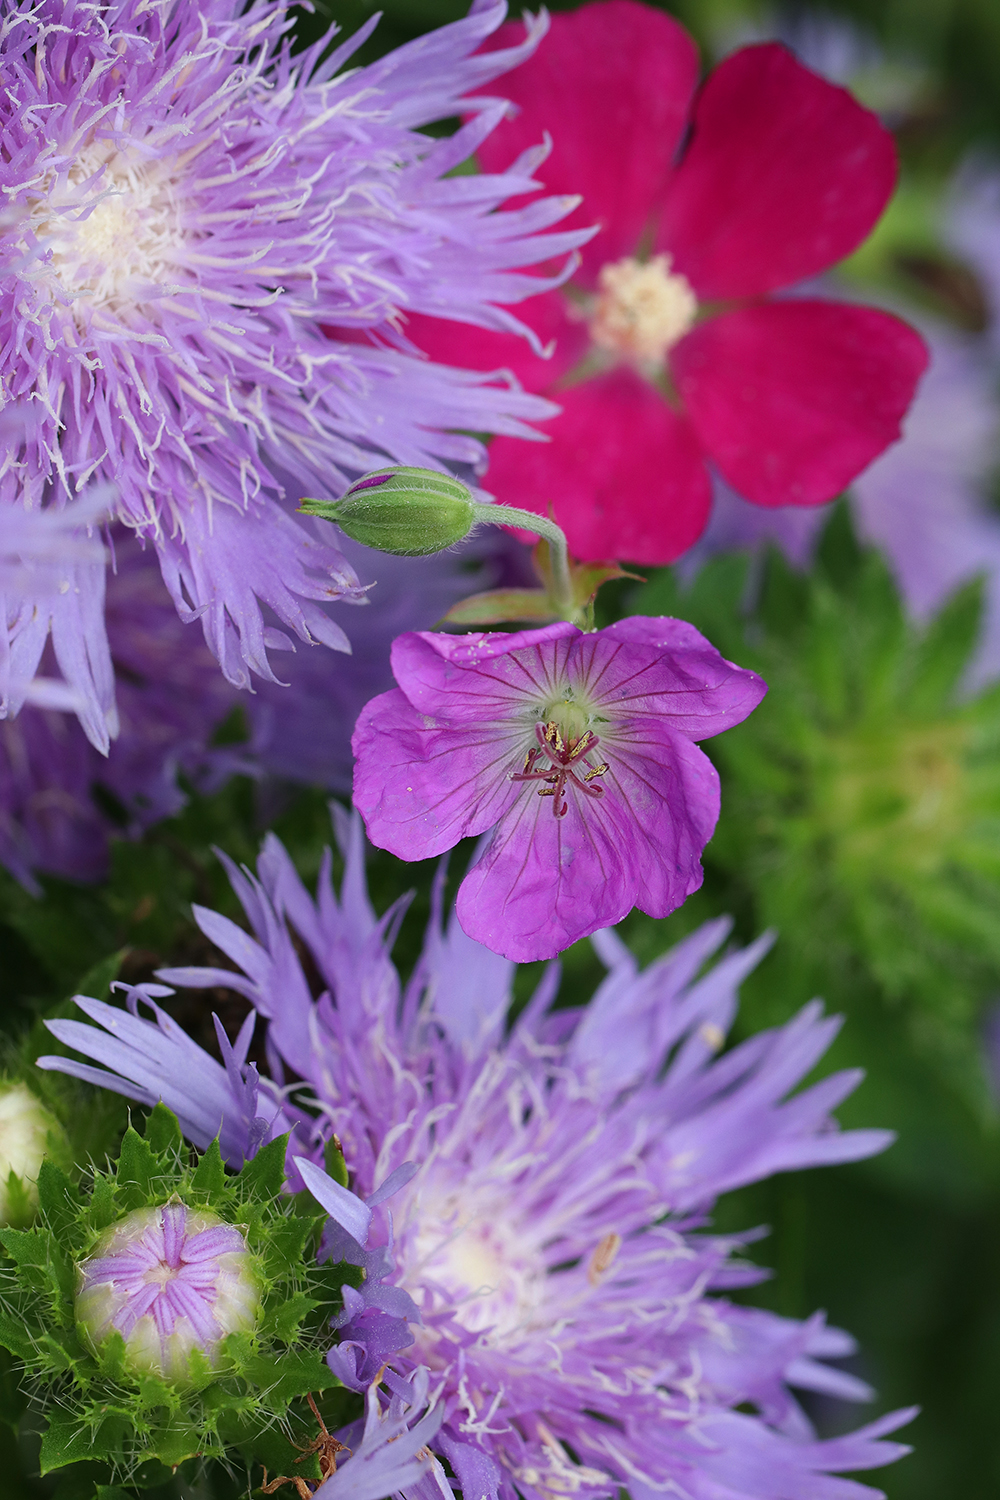 Stoke's aster, poppy mallow, and geranium in the pollinator garden.